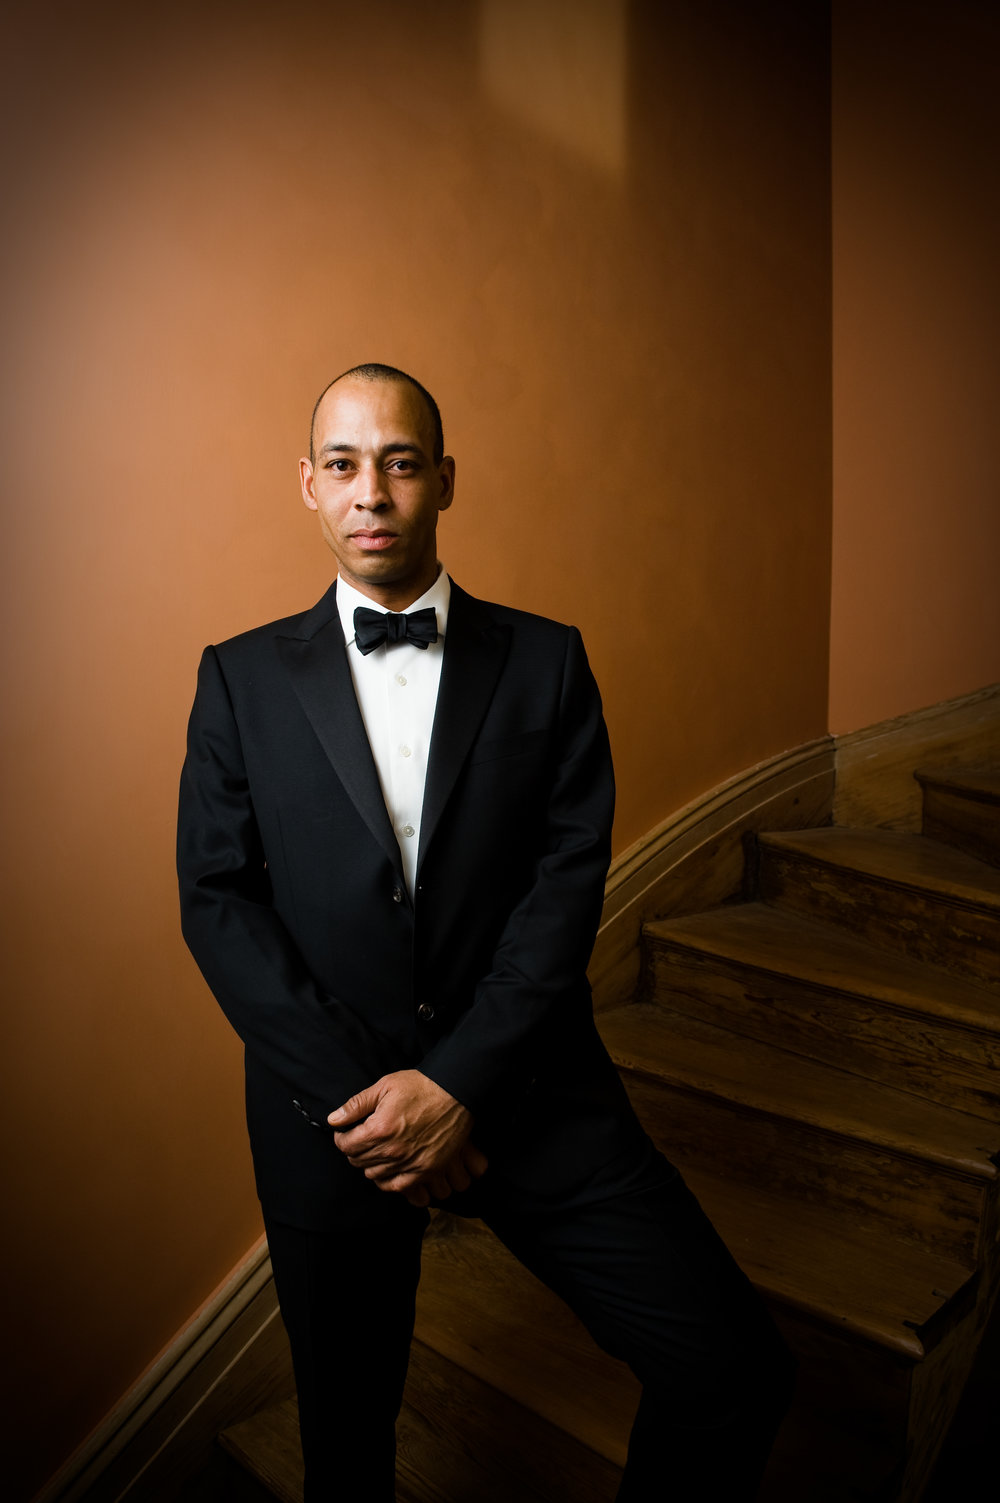 Grooms portrait in New Orleans